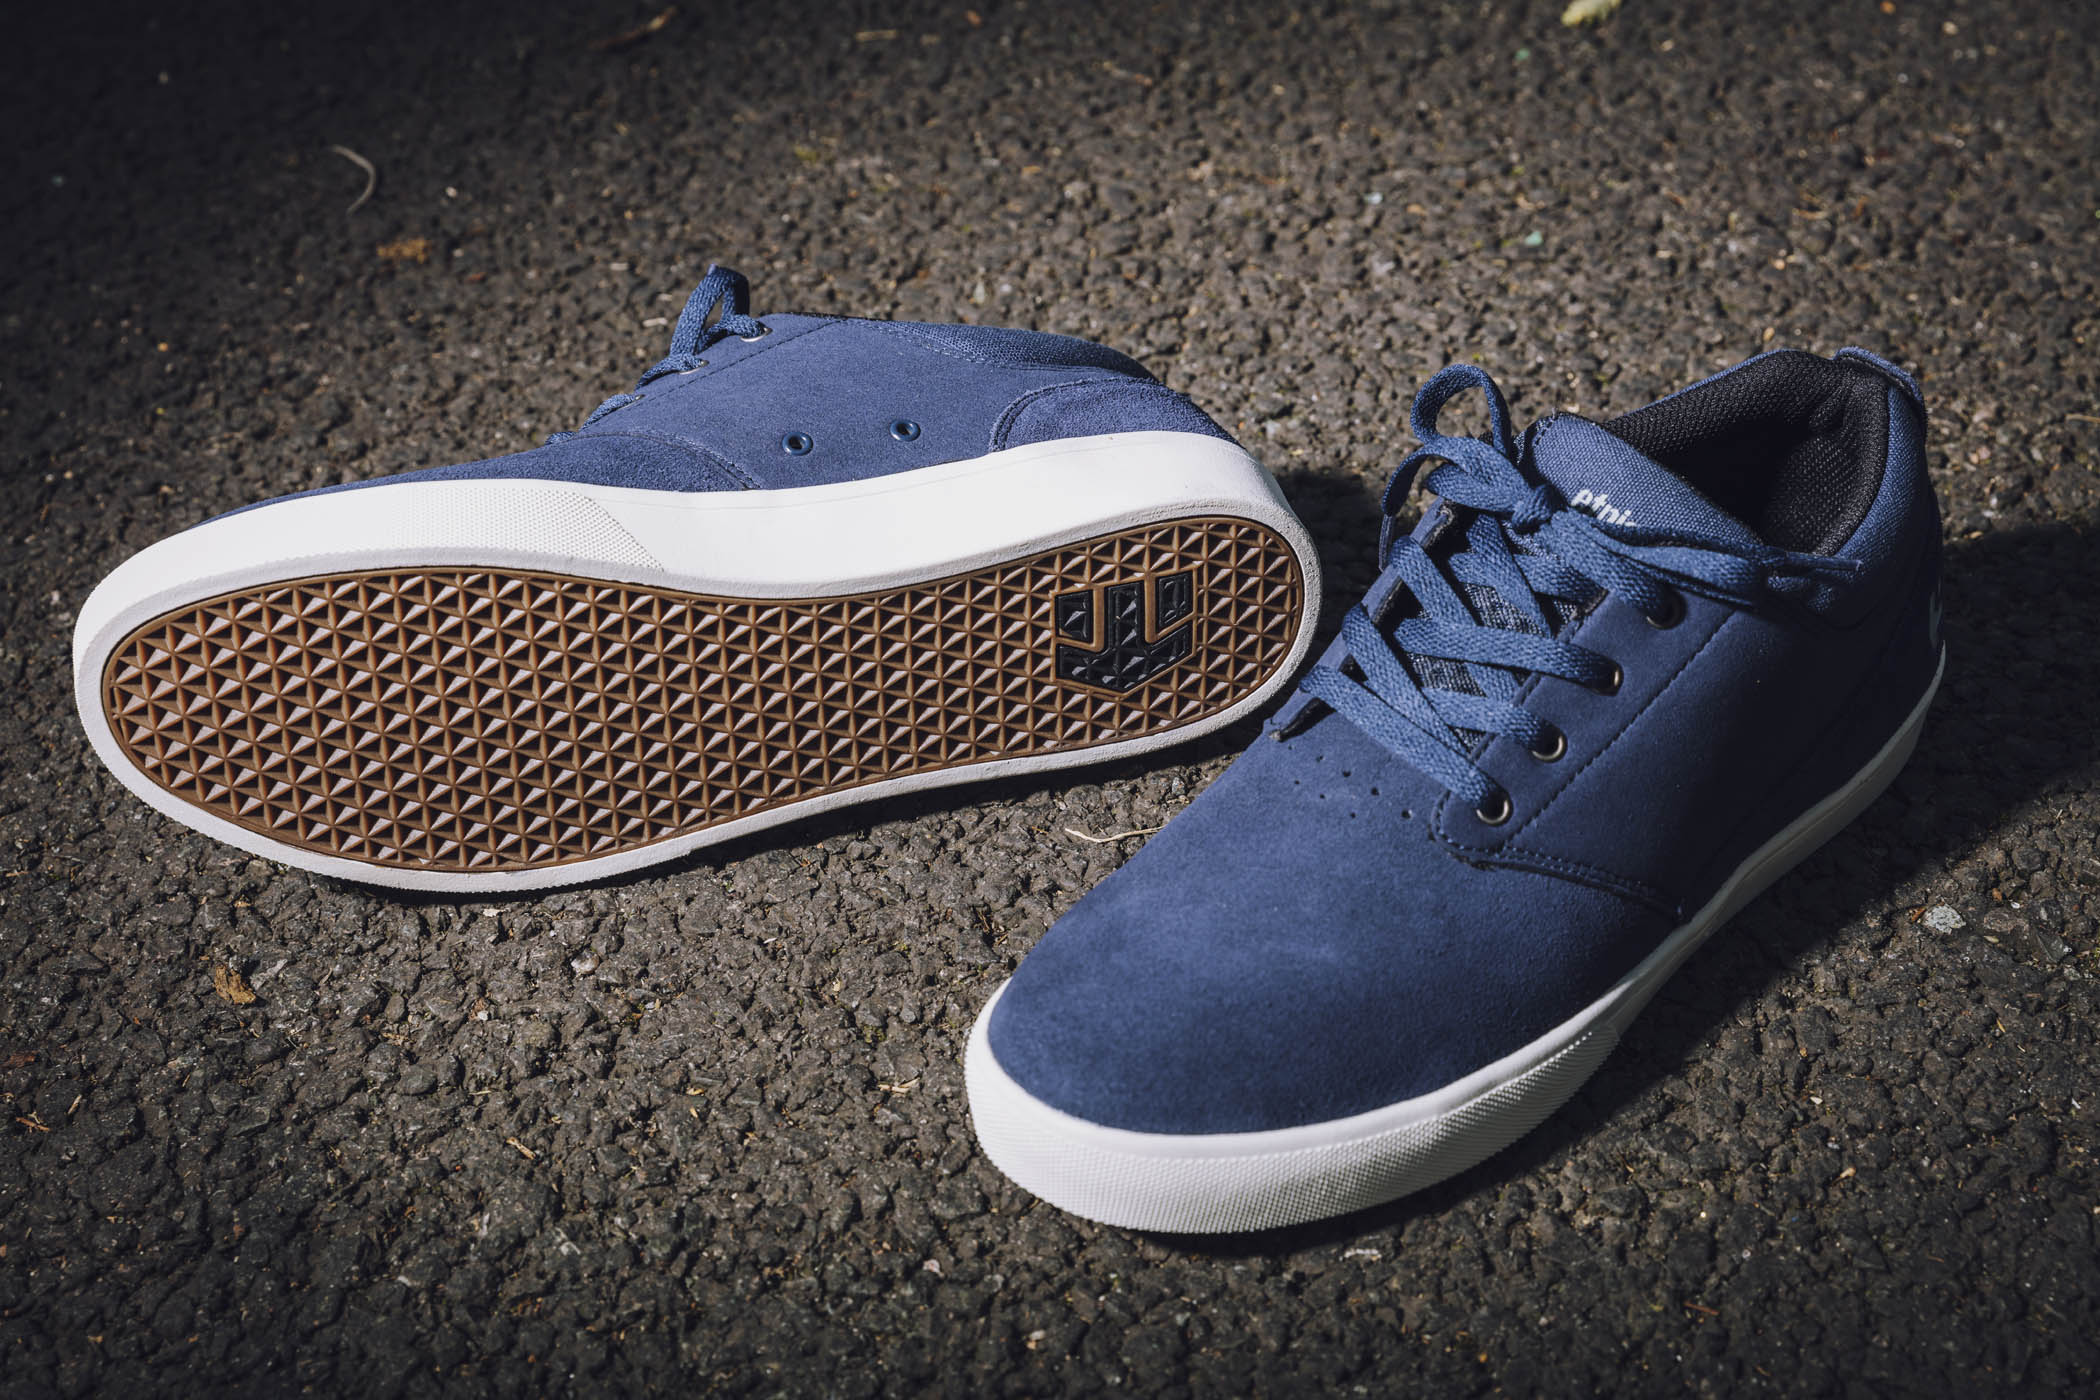 ETNIES JAMESON CHASE HAWK – REVIEW